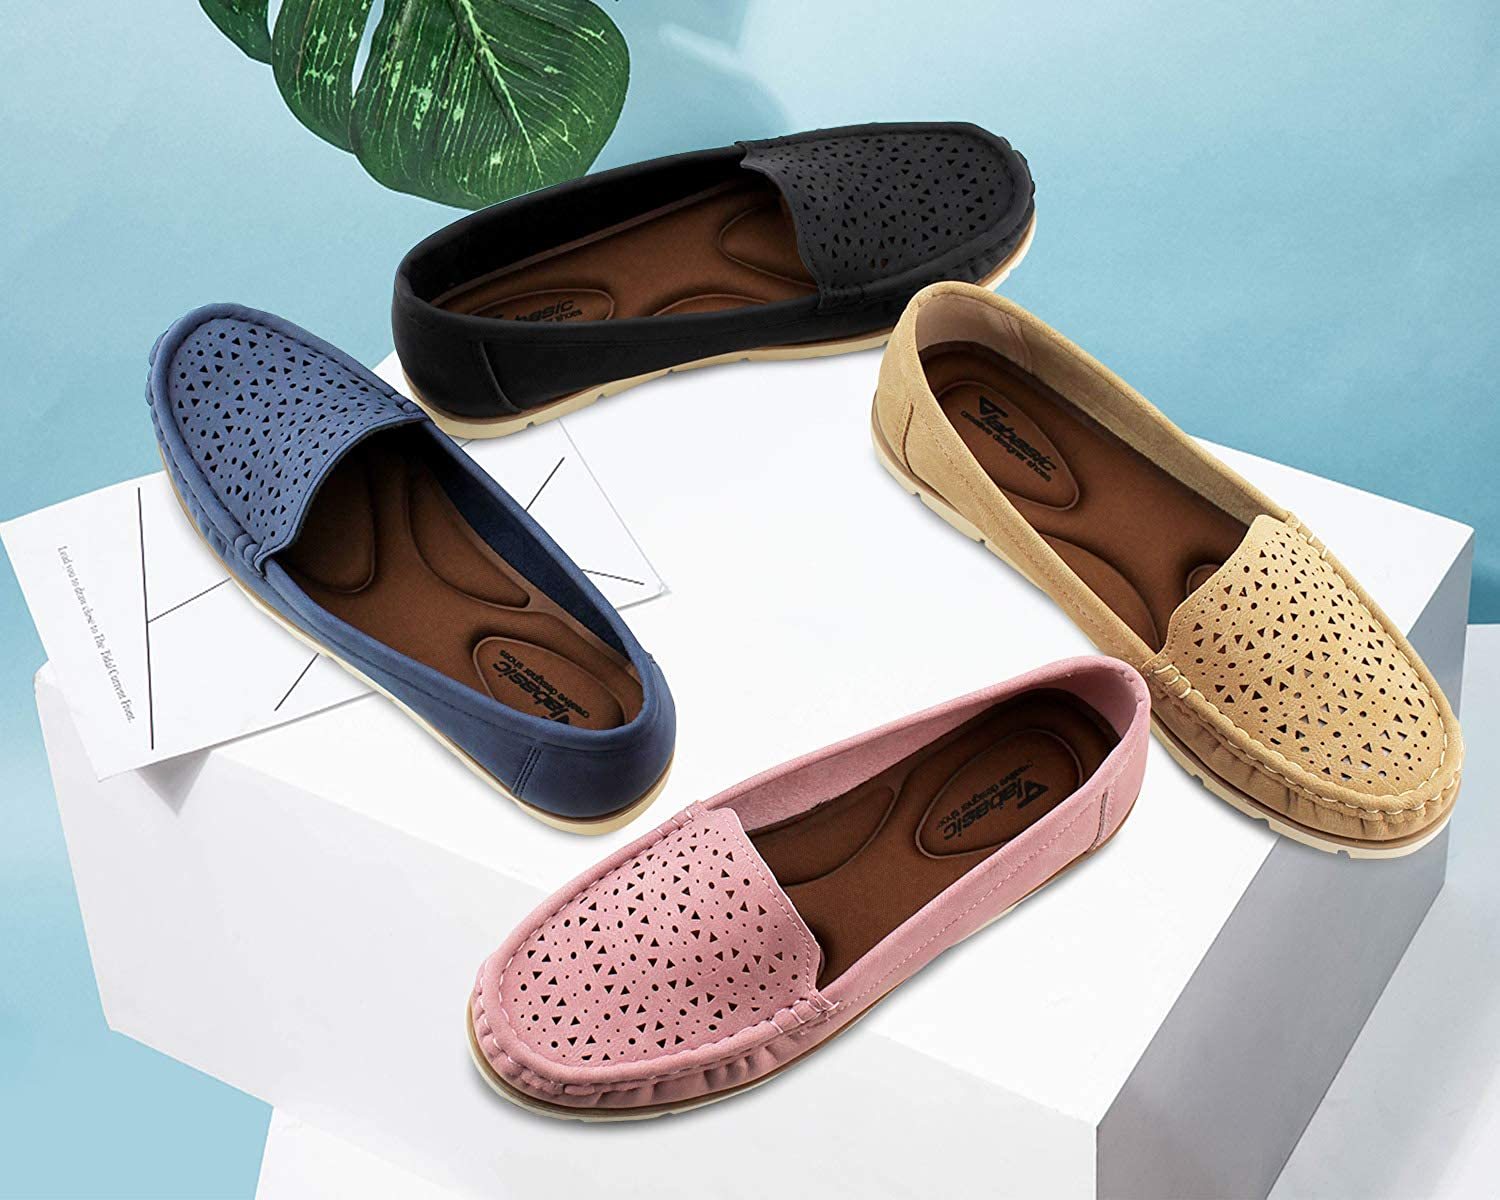 ANBOVER Womens Flat Loafers Casual Leather Driving Slip on Shoes